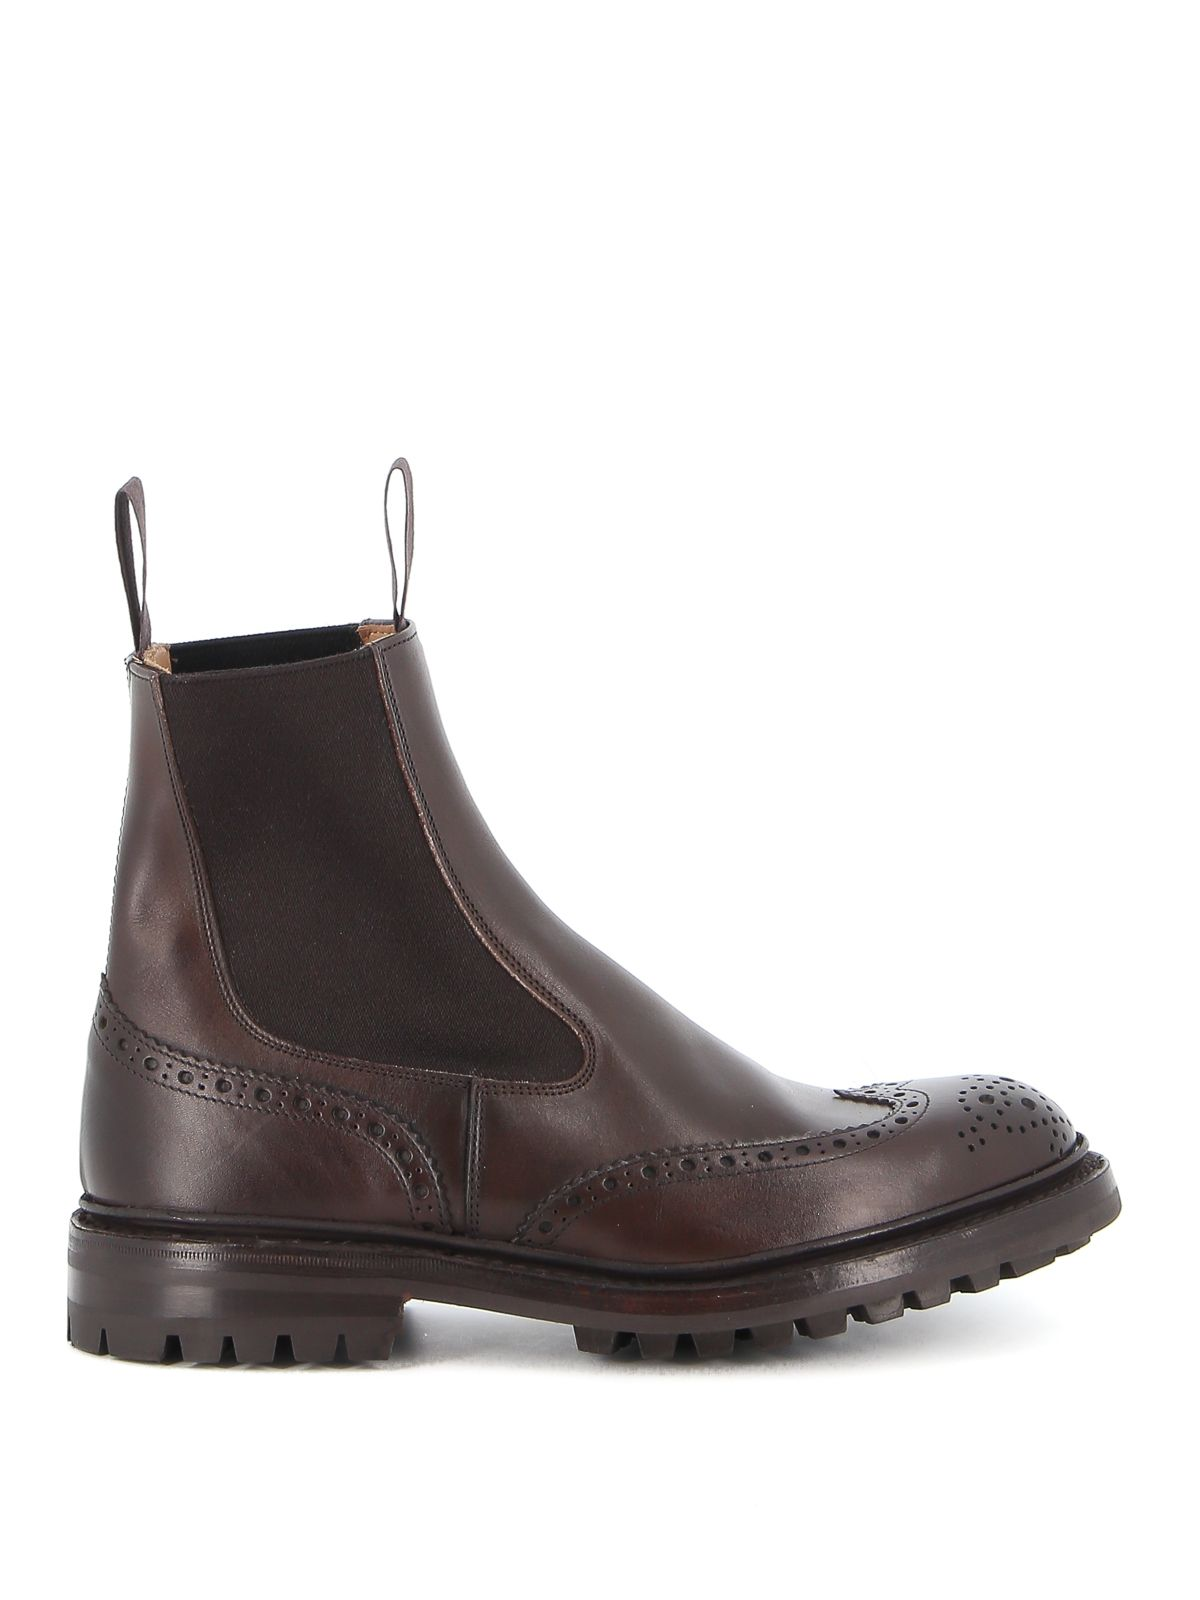 Tricker's TRICKER'S MEN'S BROWN LEATHER ANKLE BOOTS